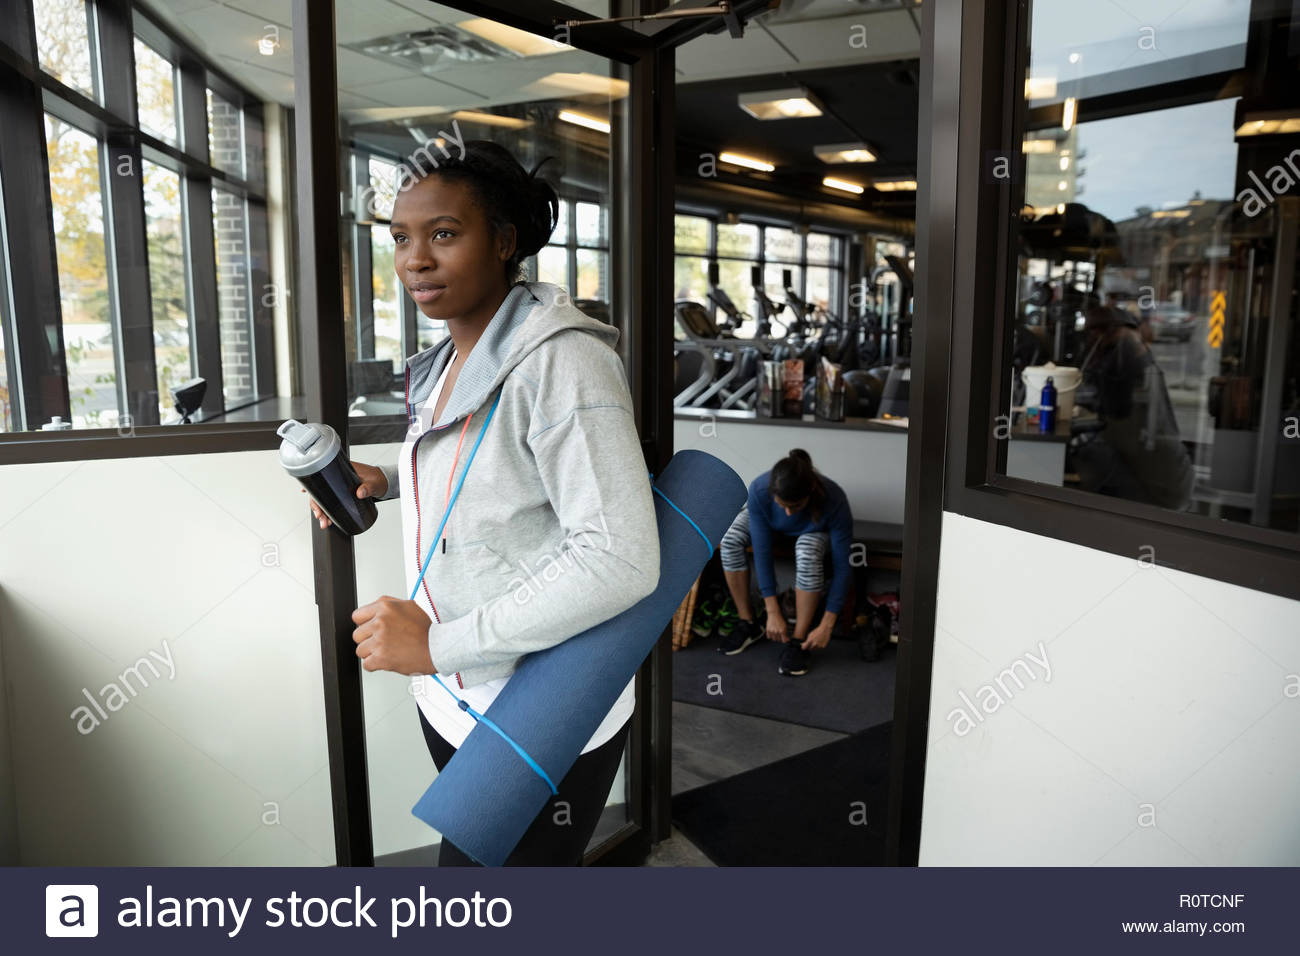 Woman with yoga mat and water bottle leaving gym Stock Photo